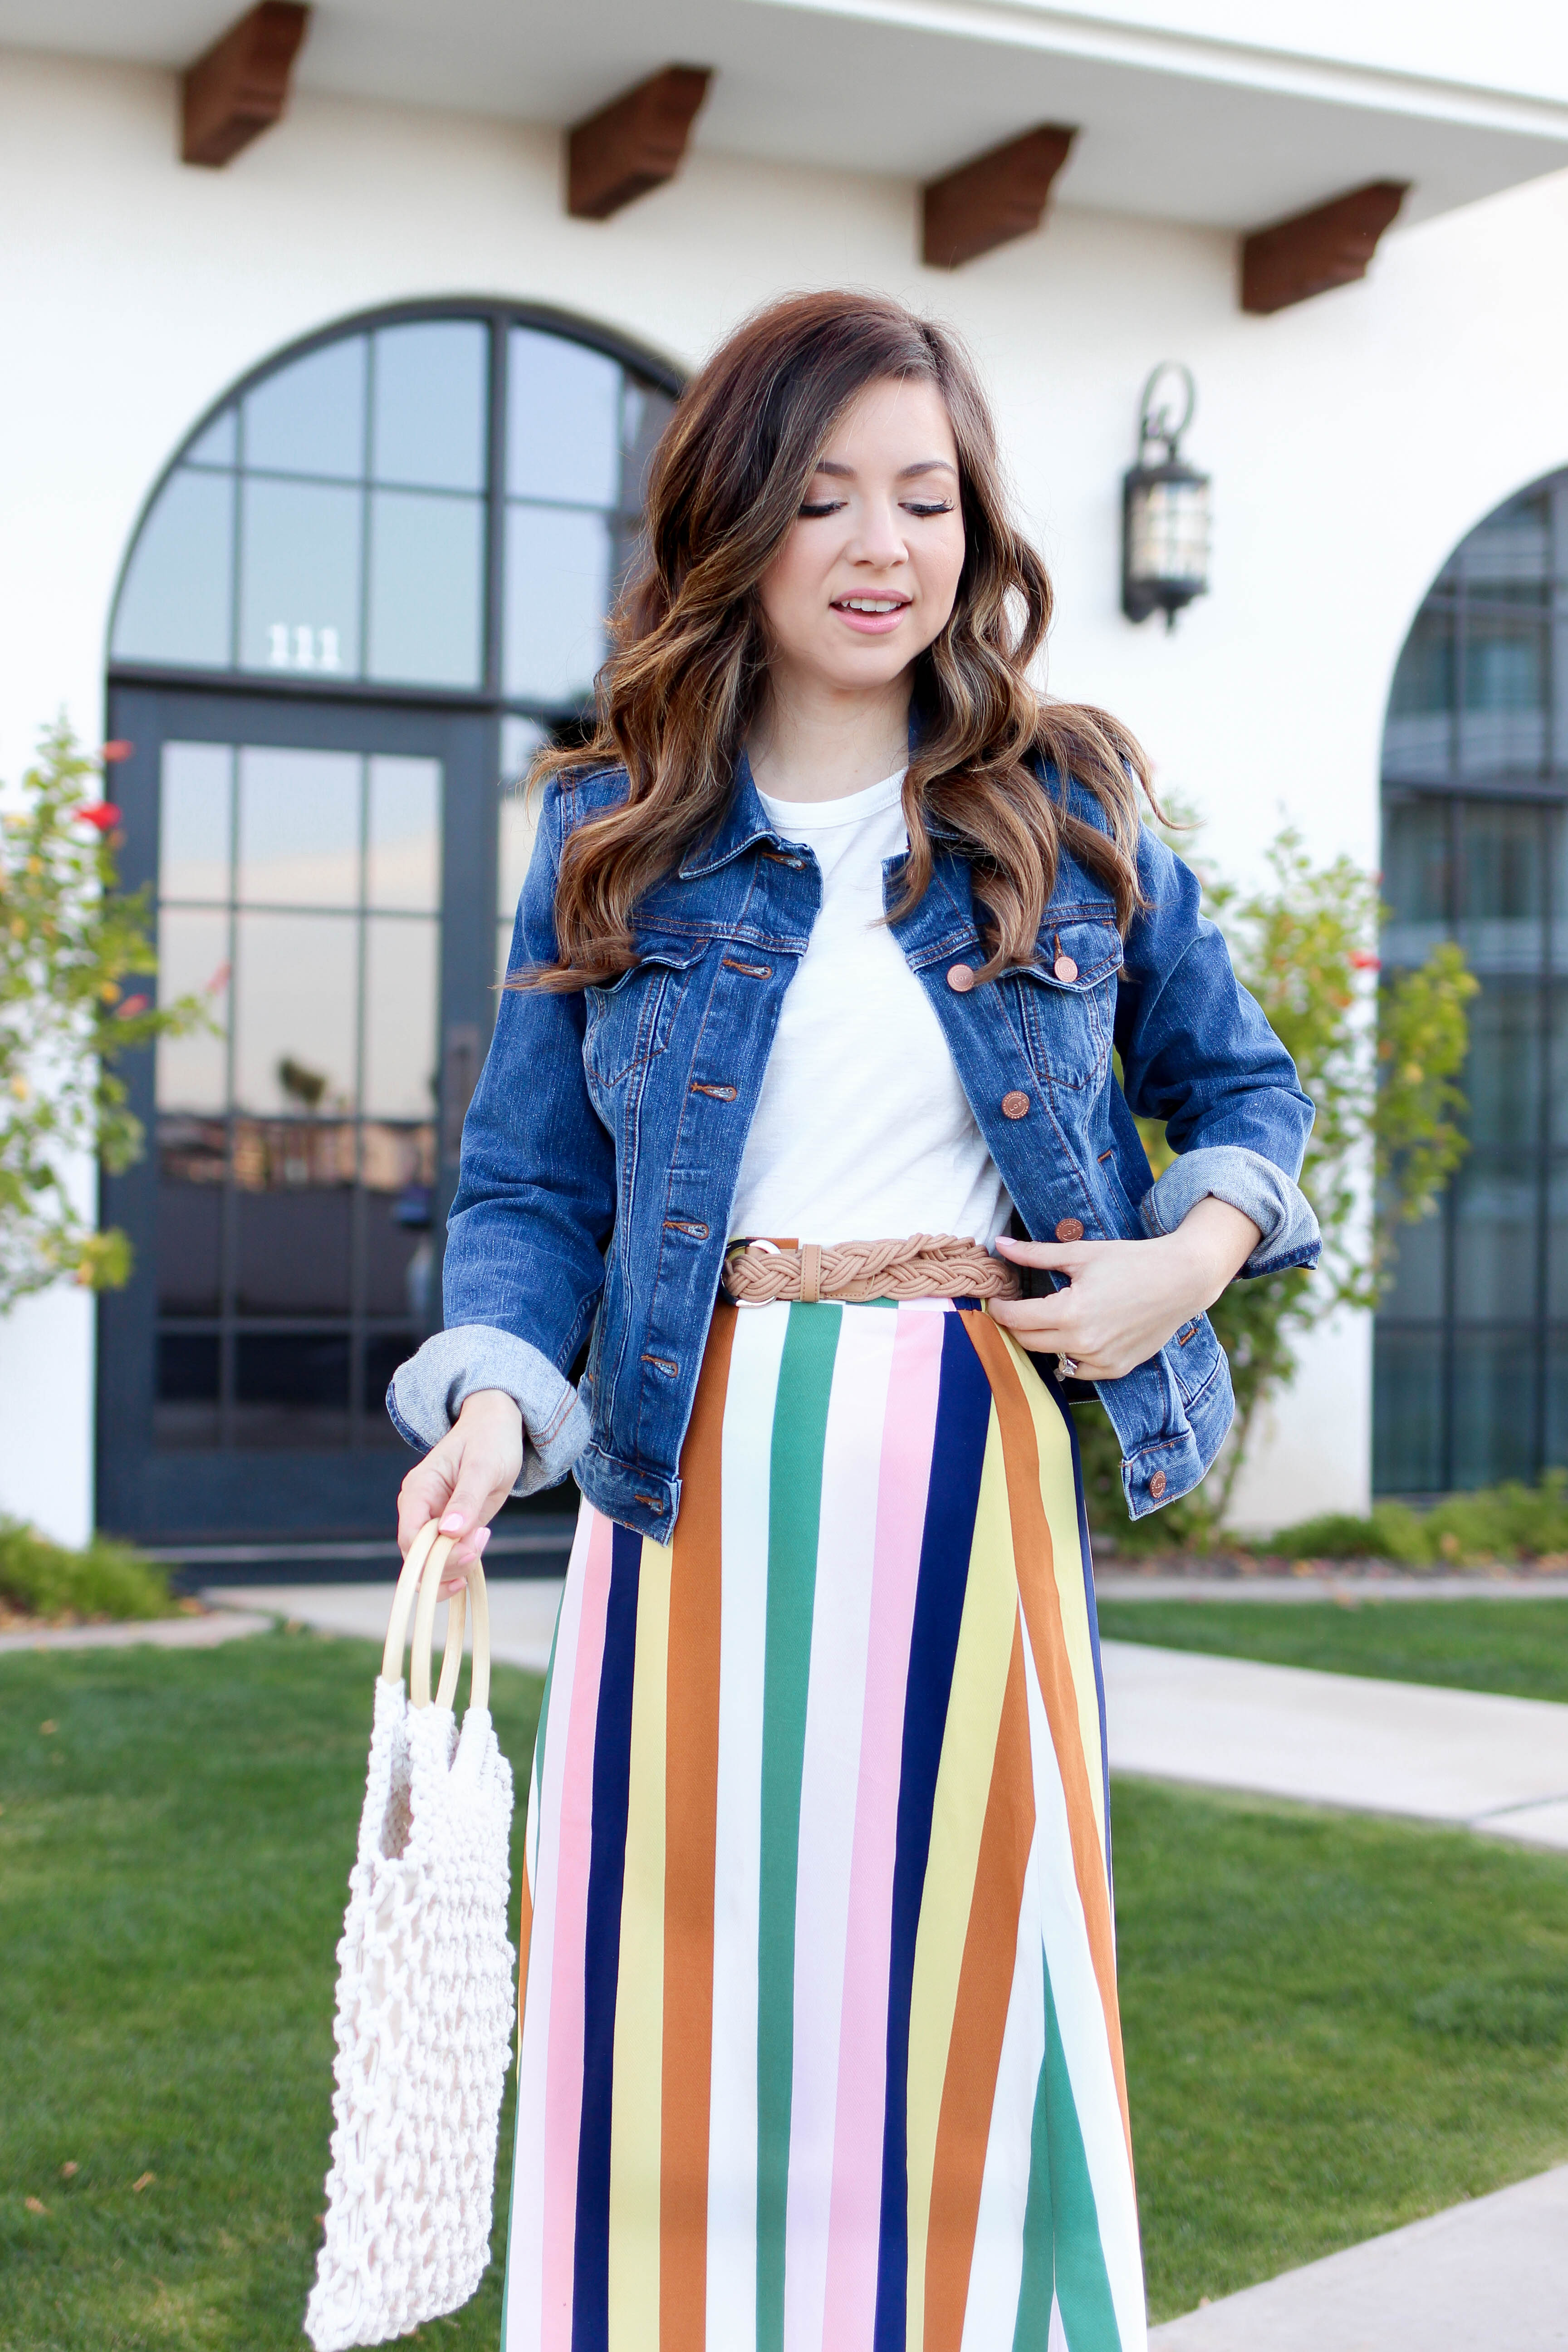 Multi color striped skirt